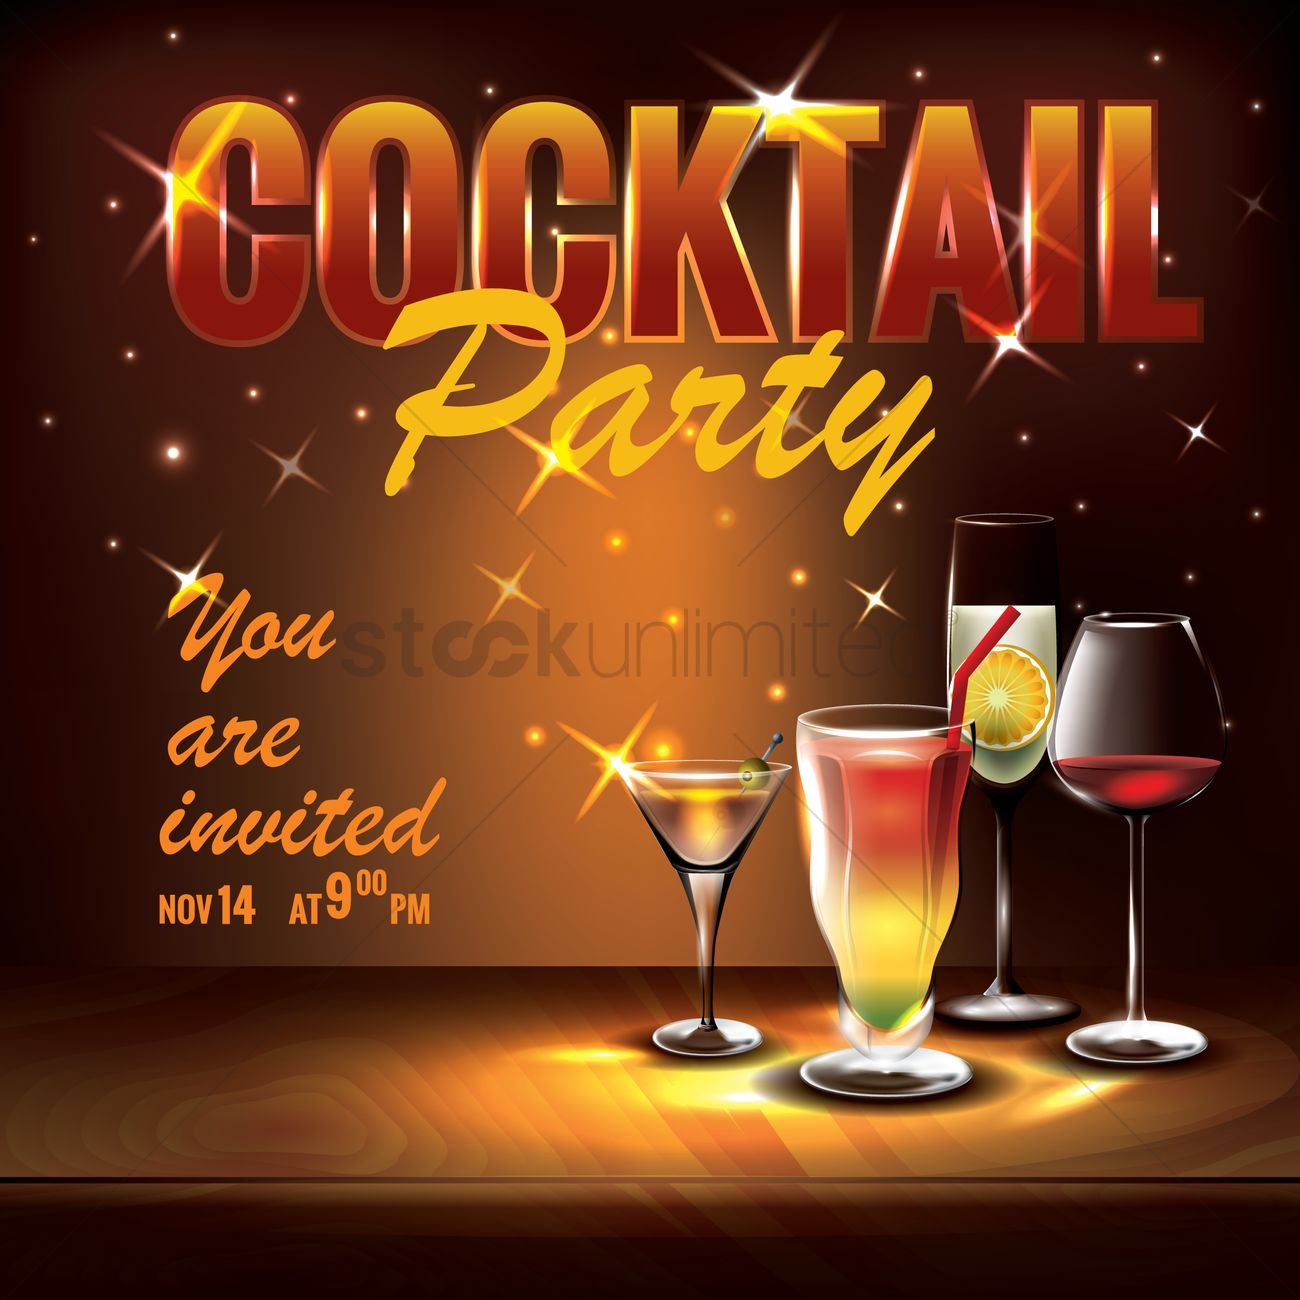 Cocktail Party Invitation Design Vector Image 1825758